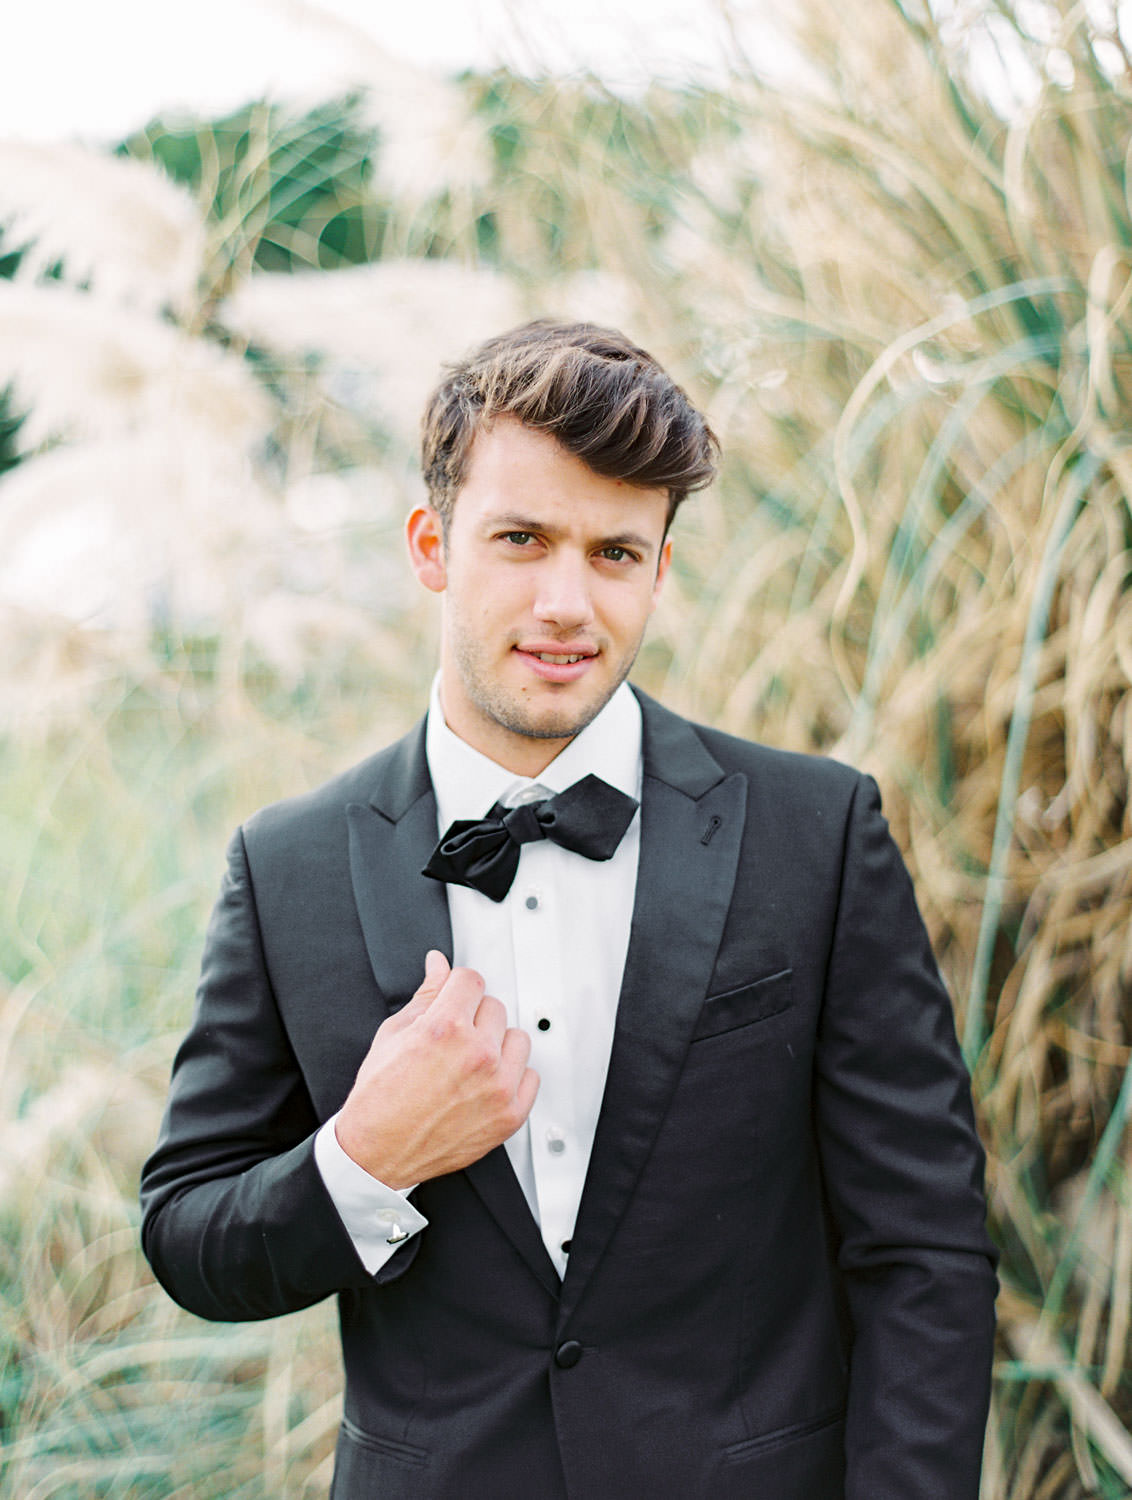 Groom wearing the Black Tux, Pampas Grass Wedding in San Diego on Film by Cavin Elizabeth Photography